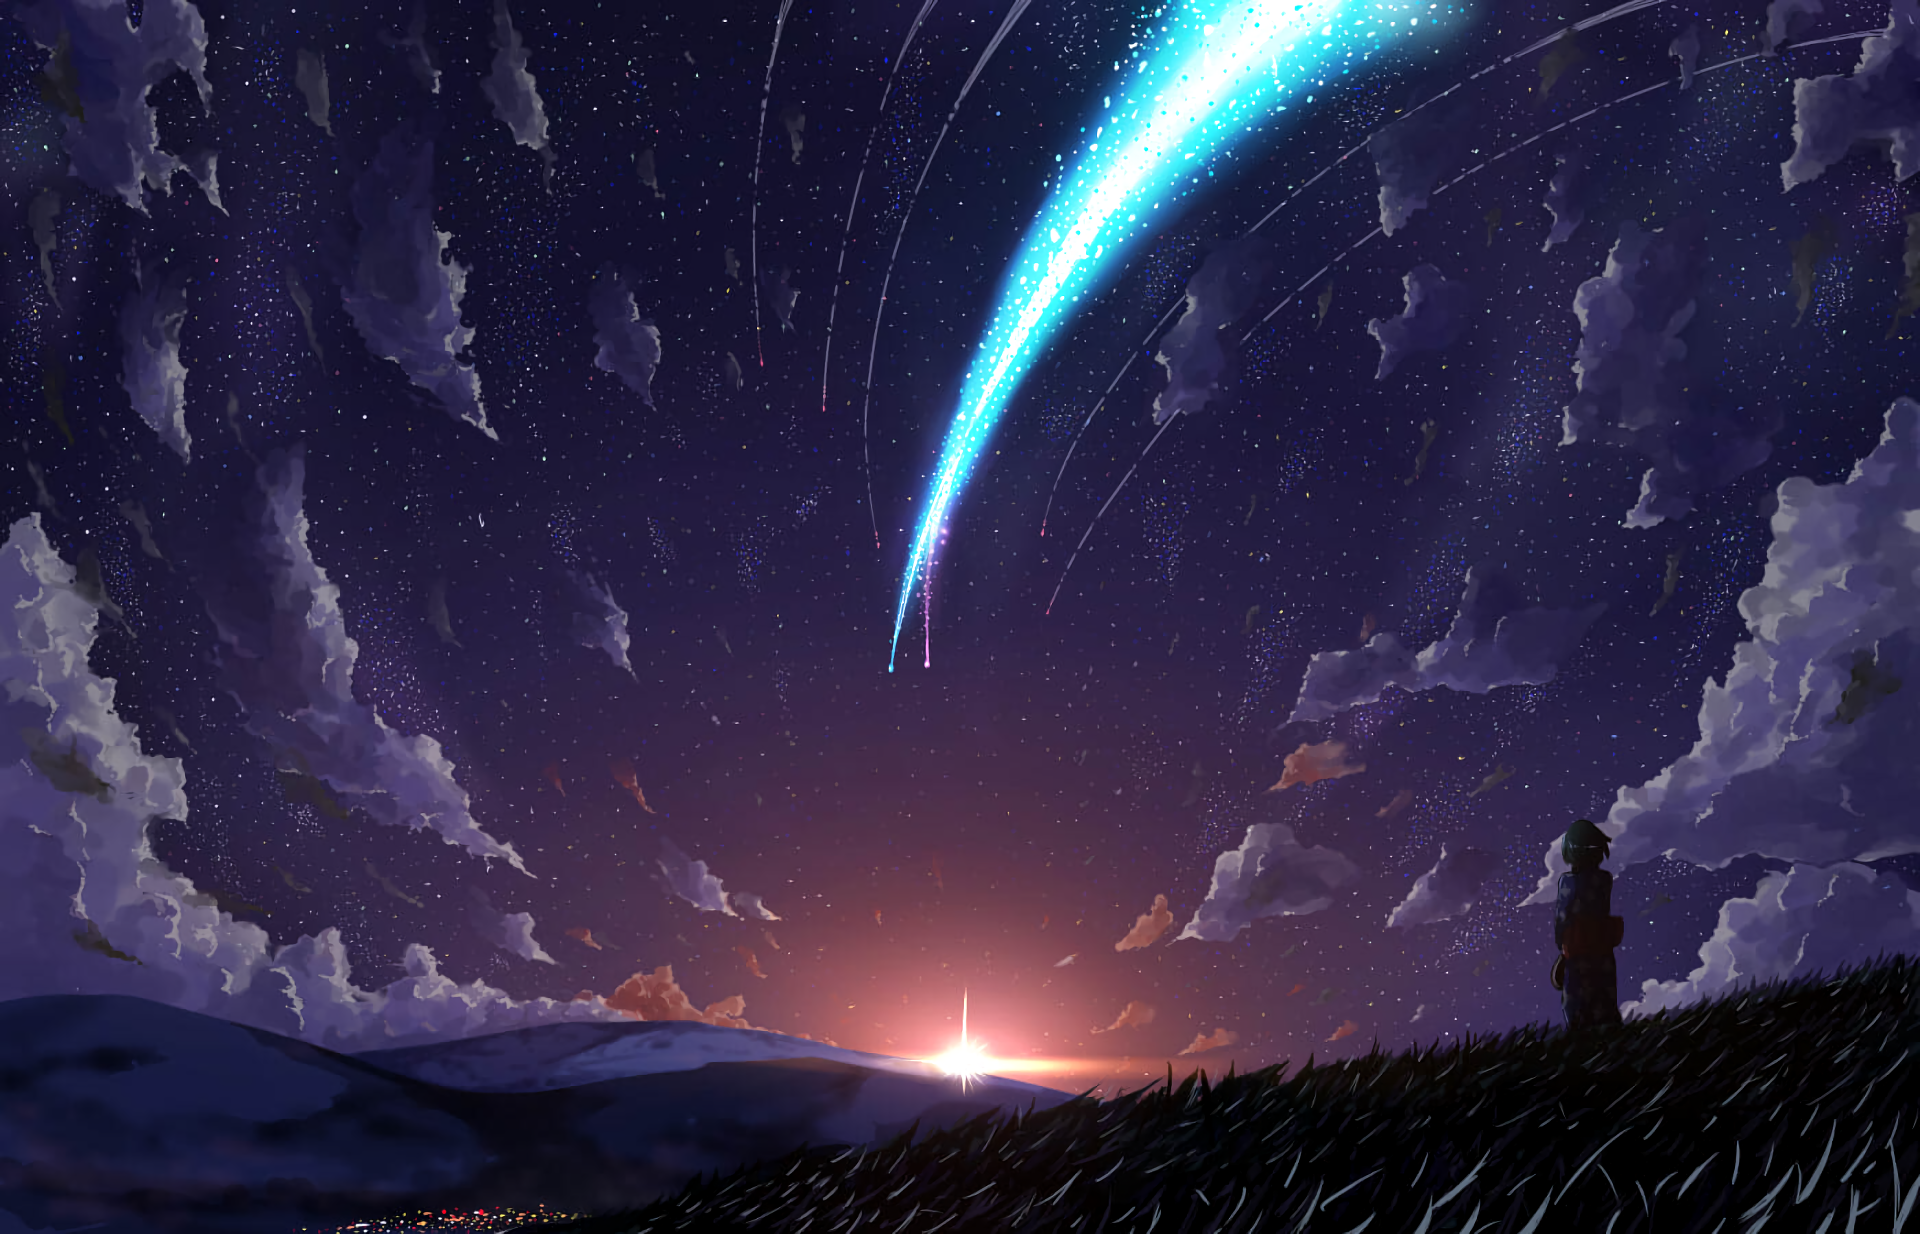 Your Name Wallpaper - Your Name wallpapers 1680x1050 ...